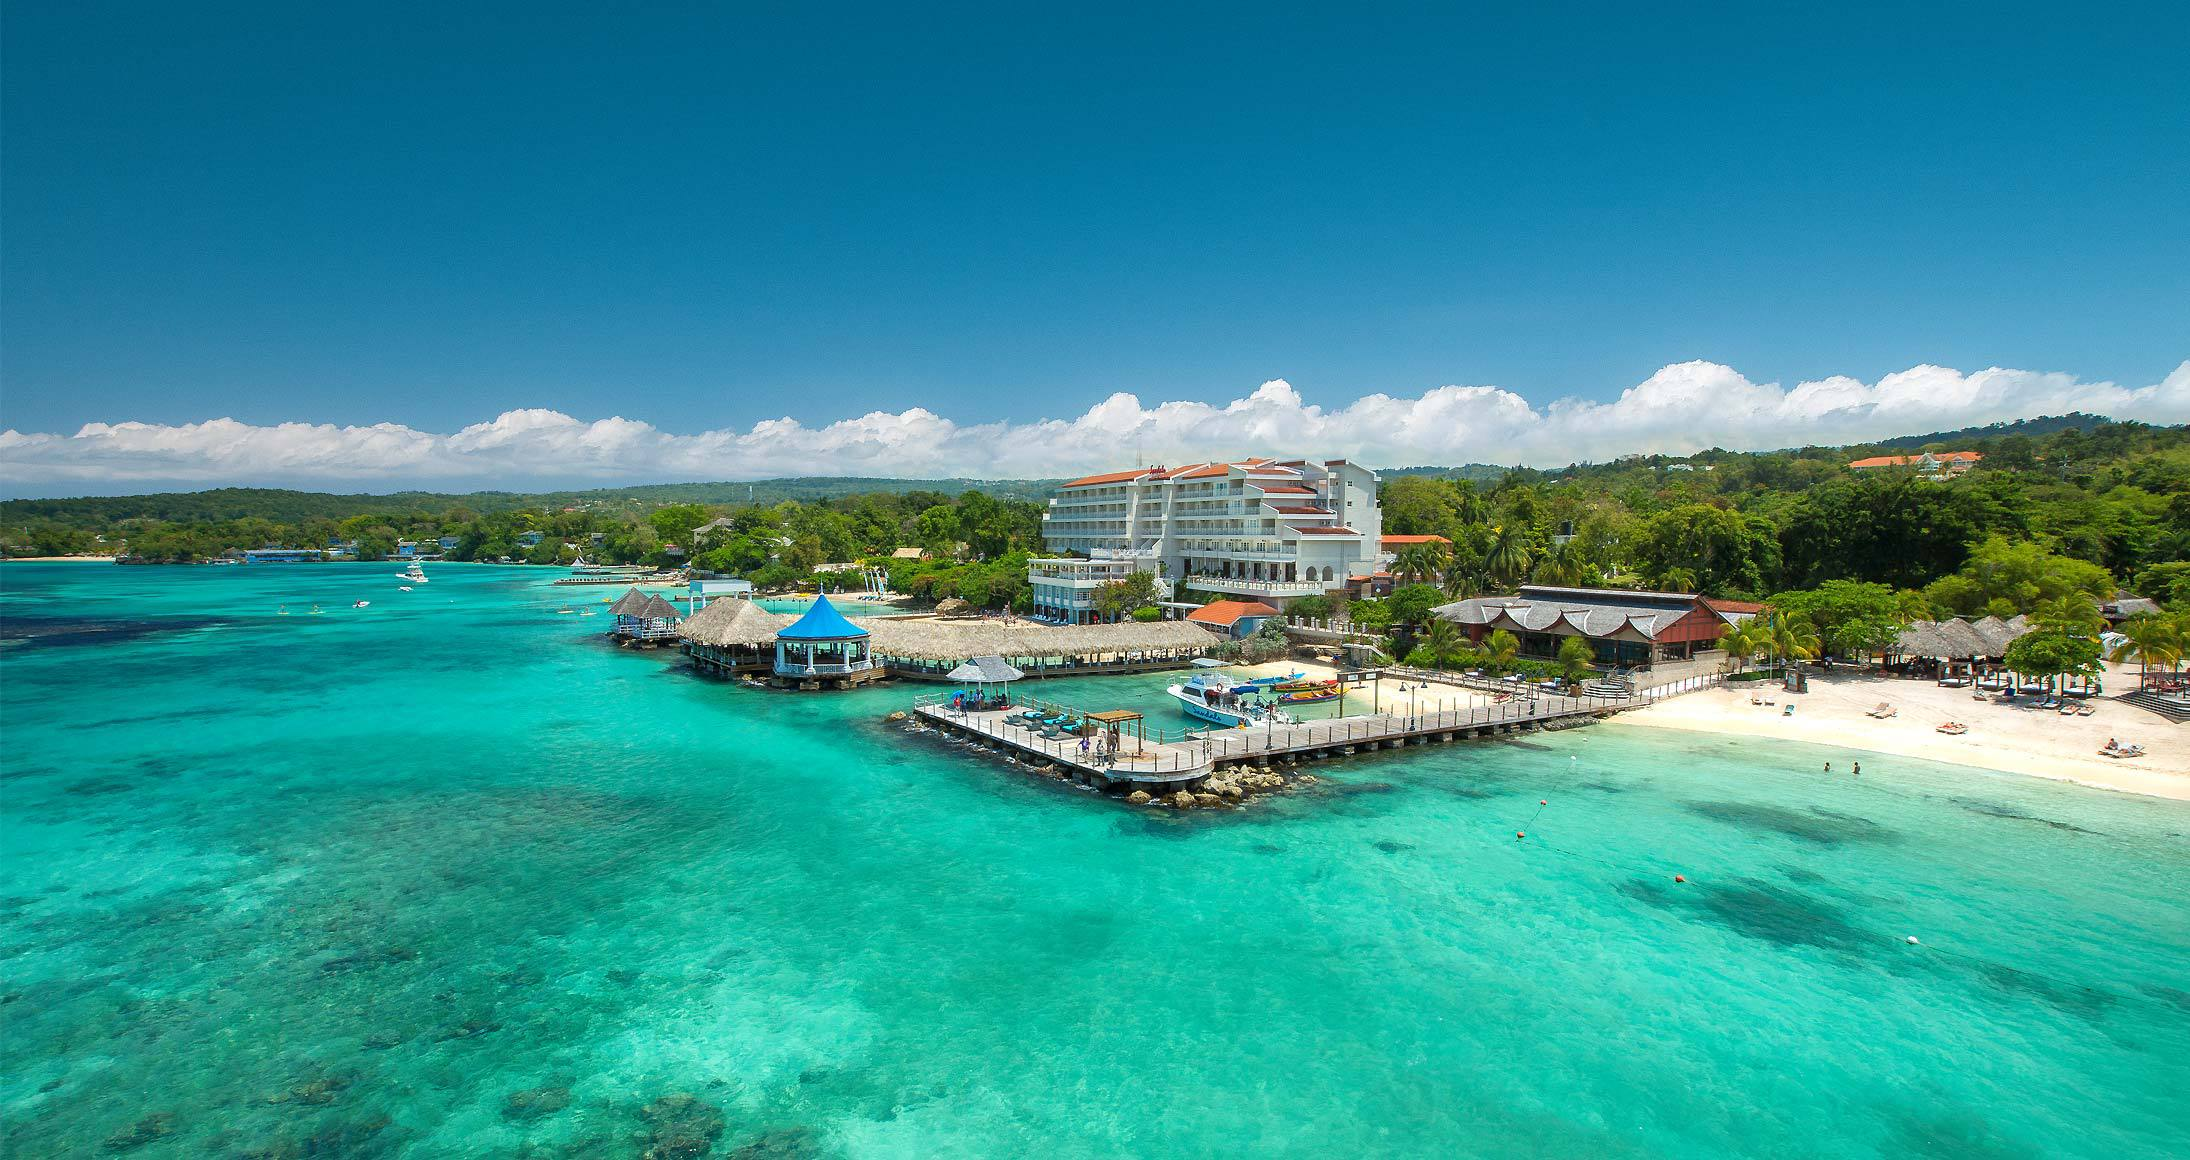 2f2ea12e931b Sandals Ochi - All-Inclusive Luxury Resort in Ocho Rios